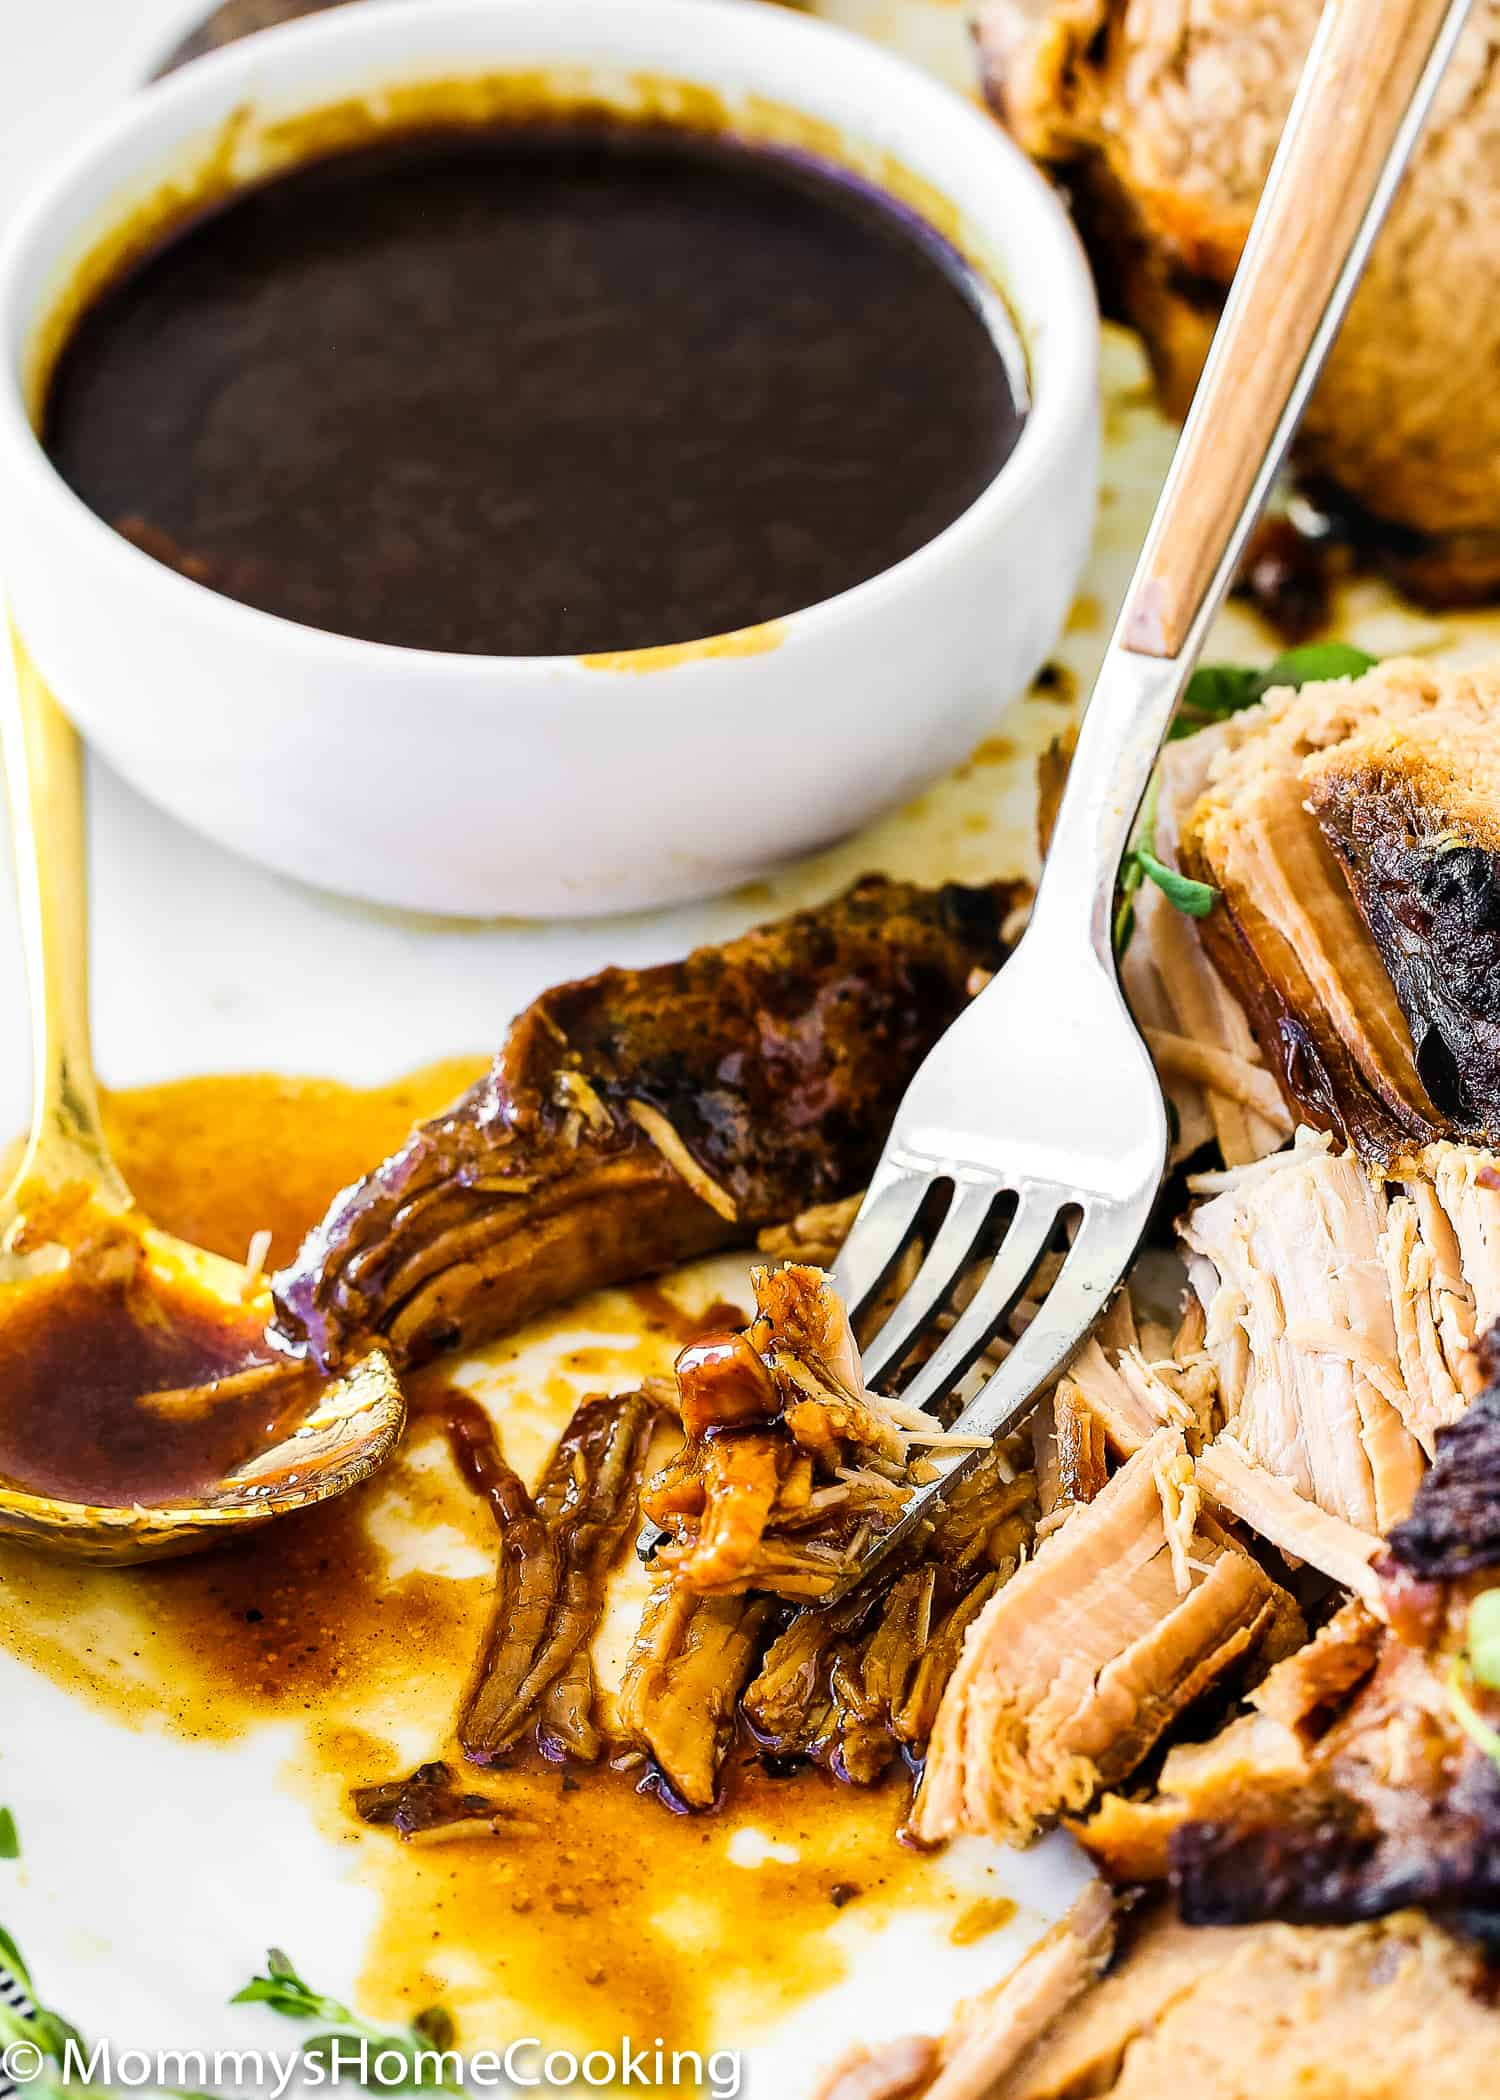 This Slow Cooker Honey Balsamic Pork Loin is tender, juicy and fall-apart delicious! Smothered in a rich honey balsamic sauce, this pork loin is easy for weeknight dinner yet fancy, elegant and impressive enough for company. https://mommyshomecooking.com